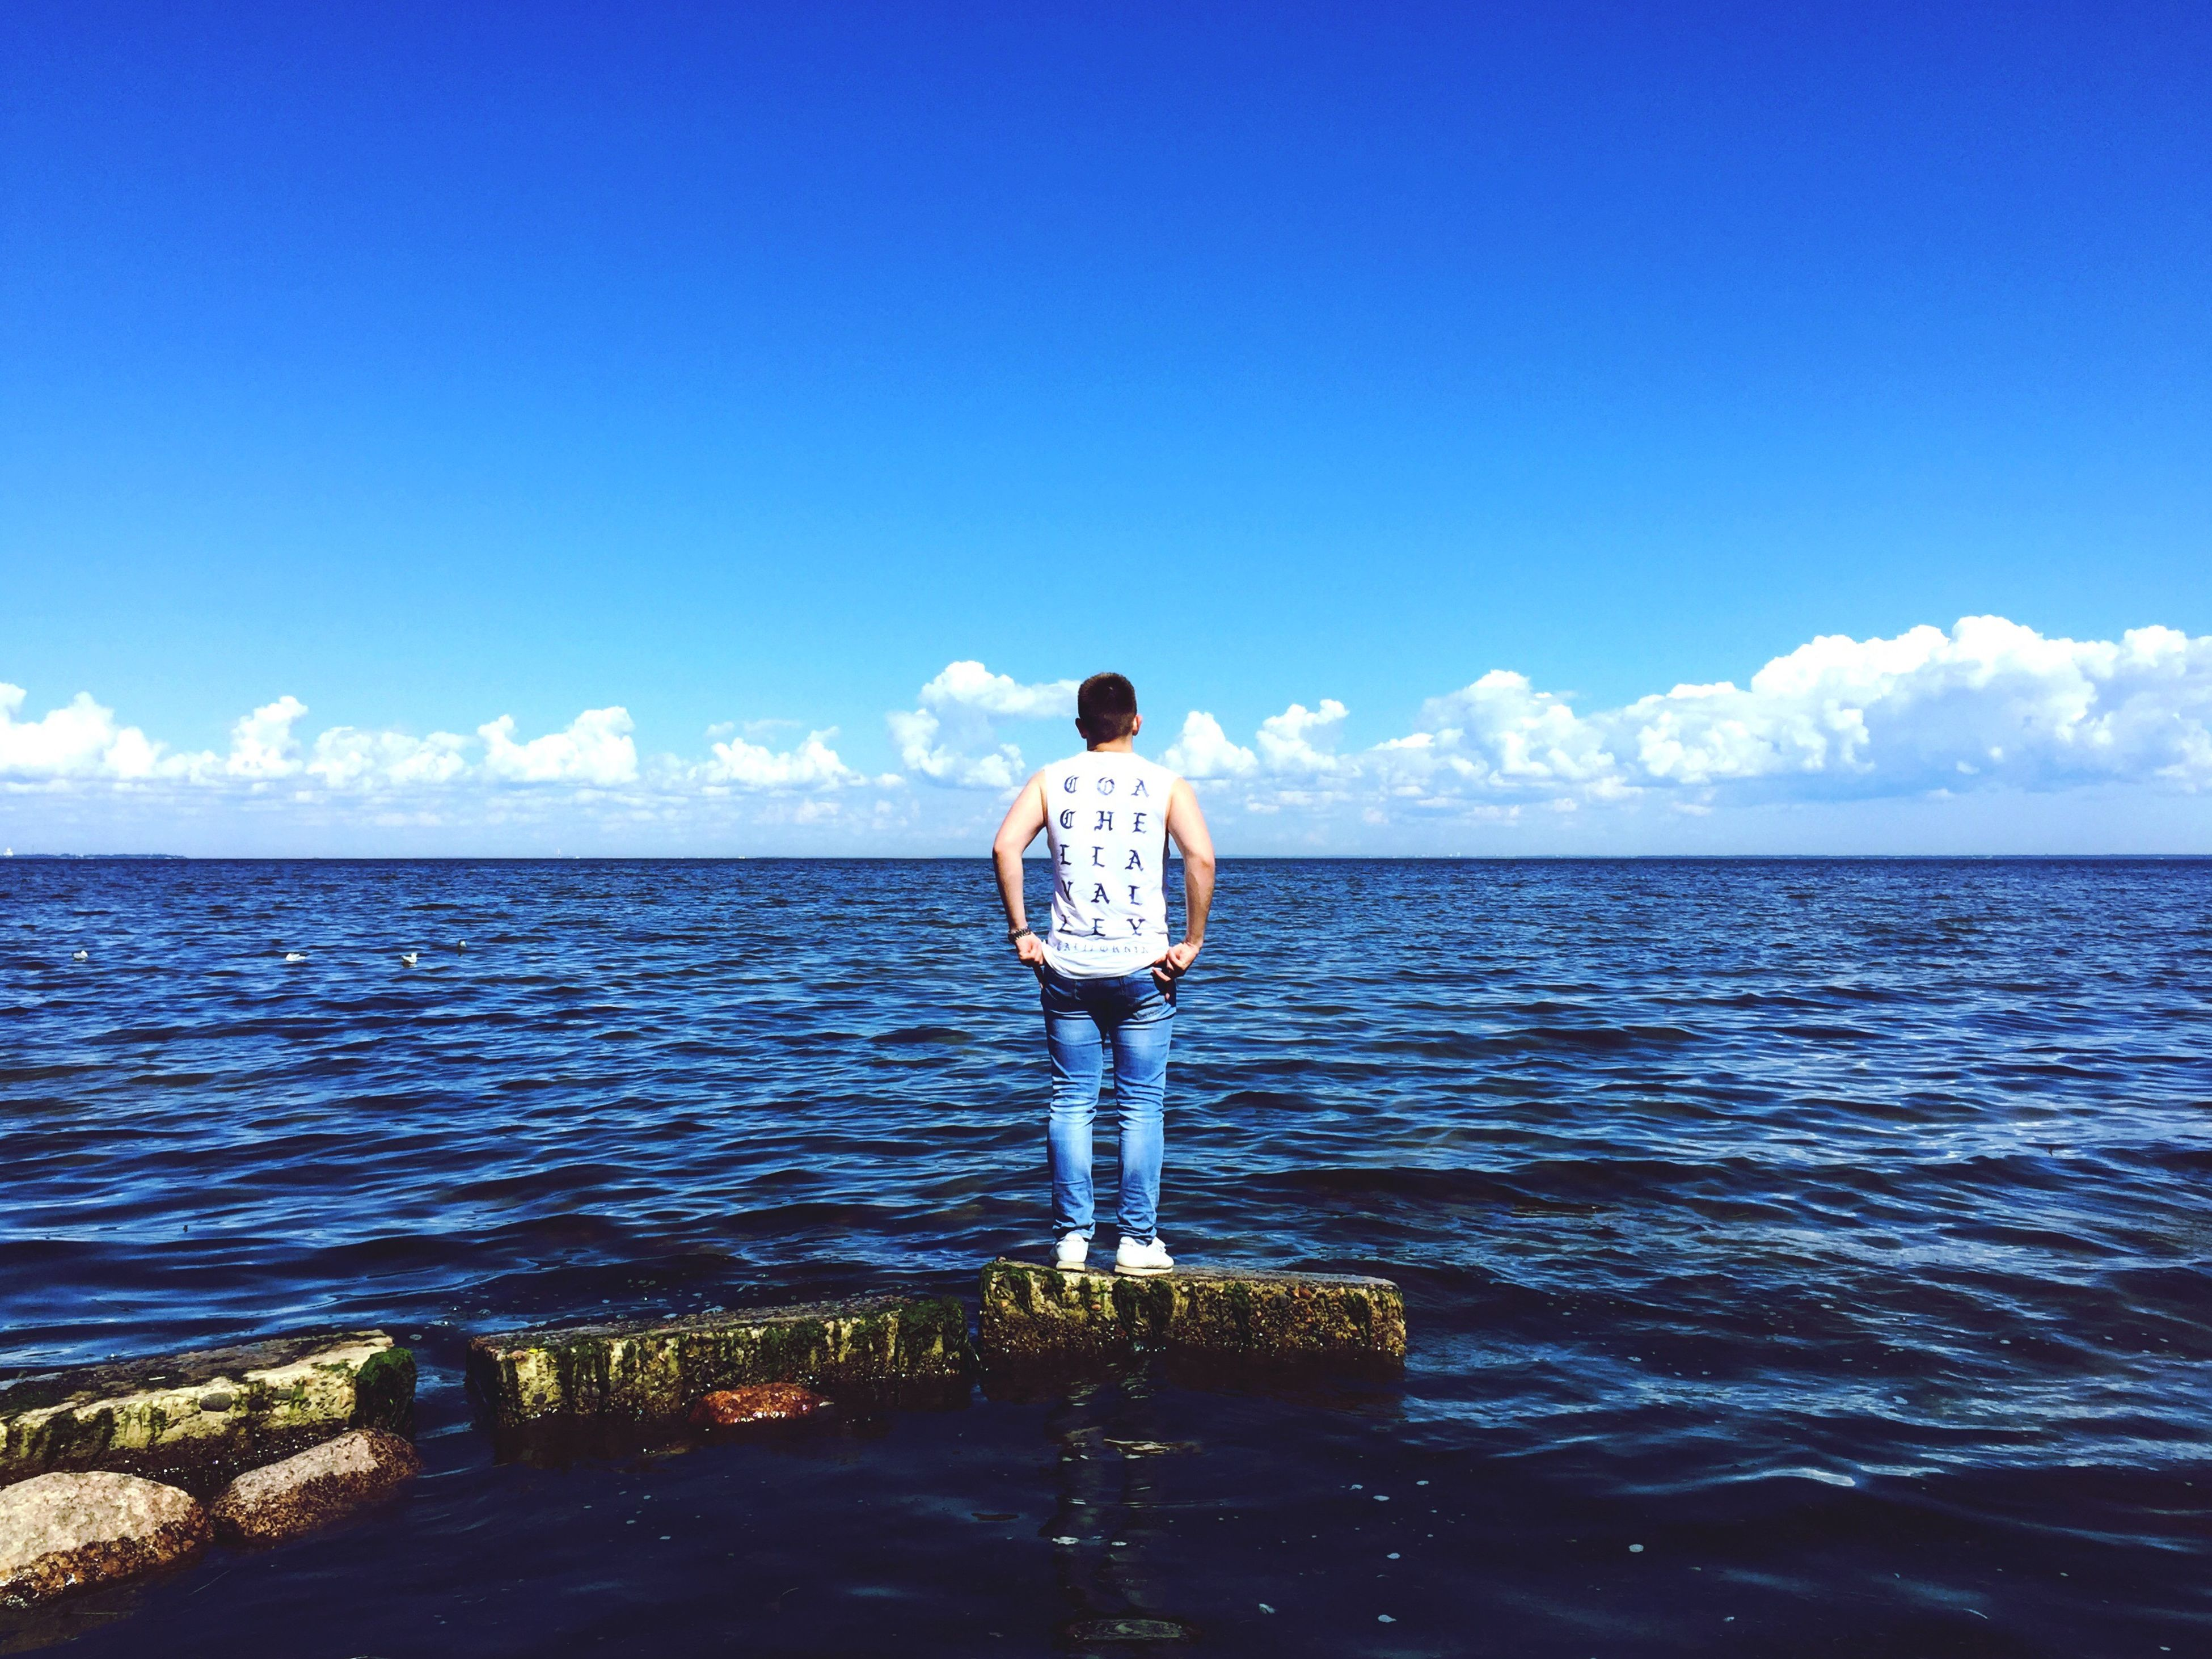 sea, horizon over water, water, nature, sky, real people, one person, rear view, standing, full length, scenics, tranquil scene, casual clothing, beauty in nature, outdoors, day, cloud - sky, tranquility, leisure activity, men, lifestyles, young adult